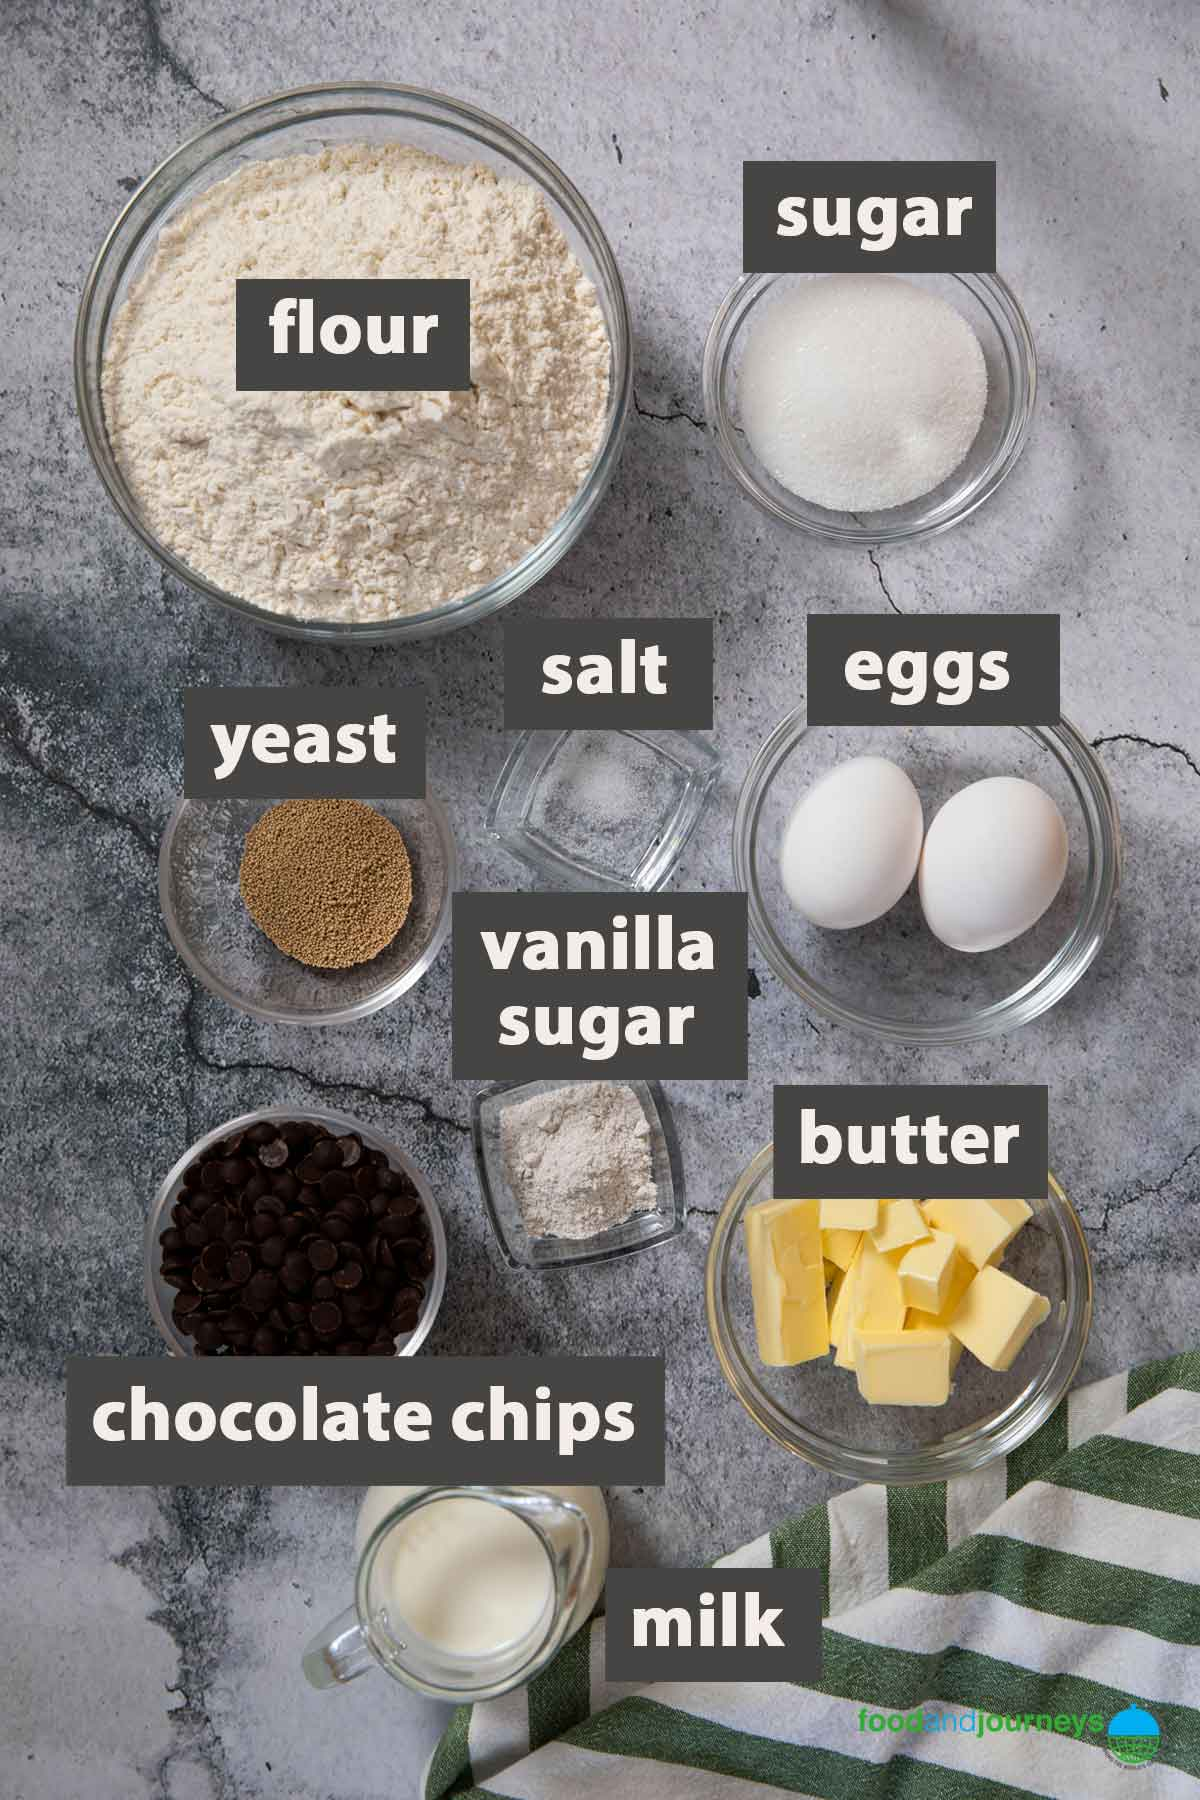 All the ingredients you need to prepare chocolate chip rolls at home.